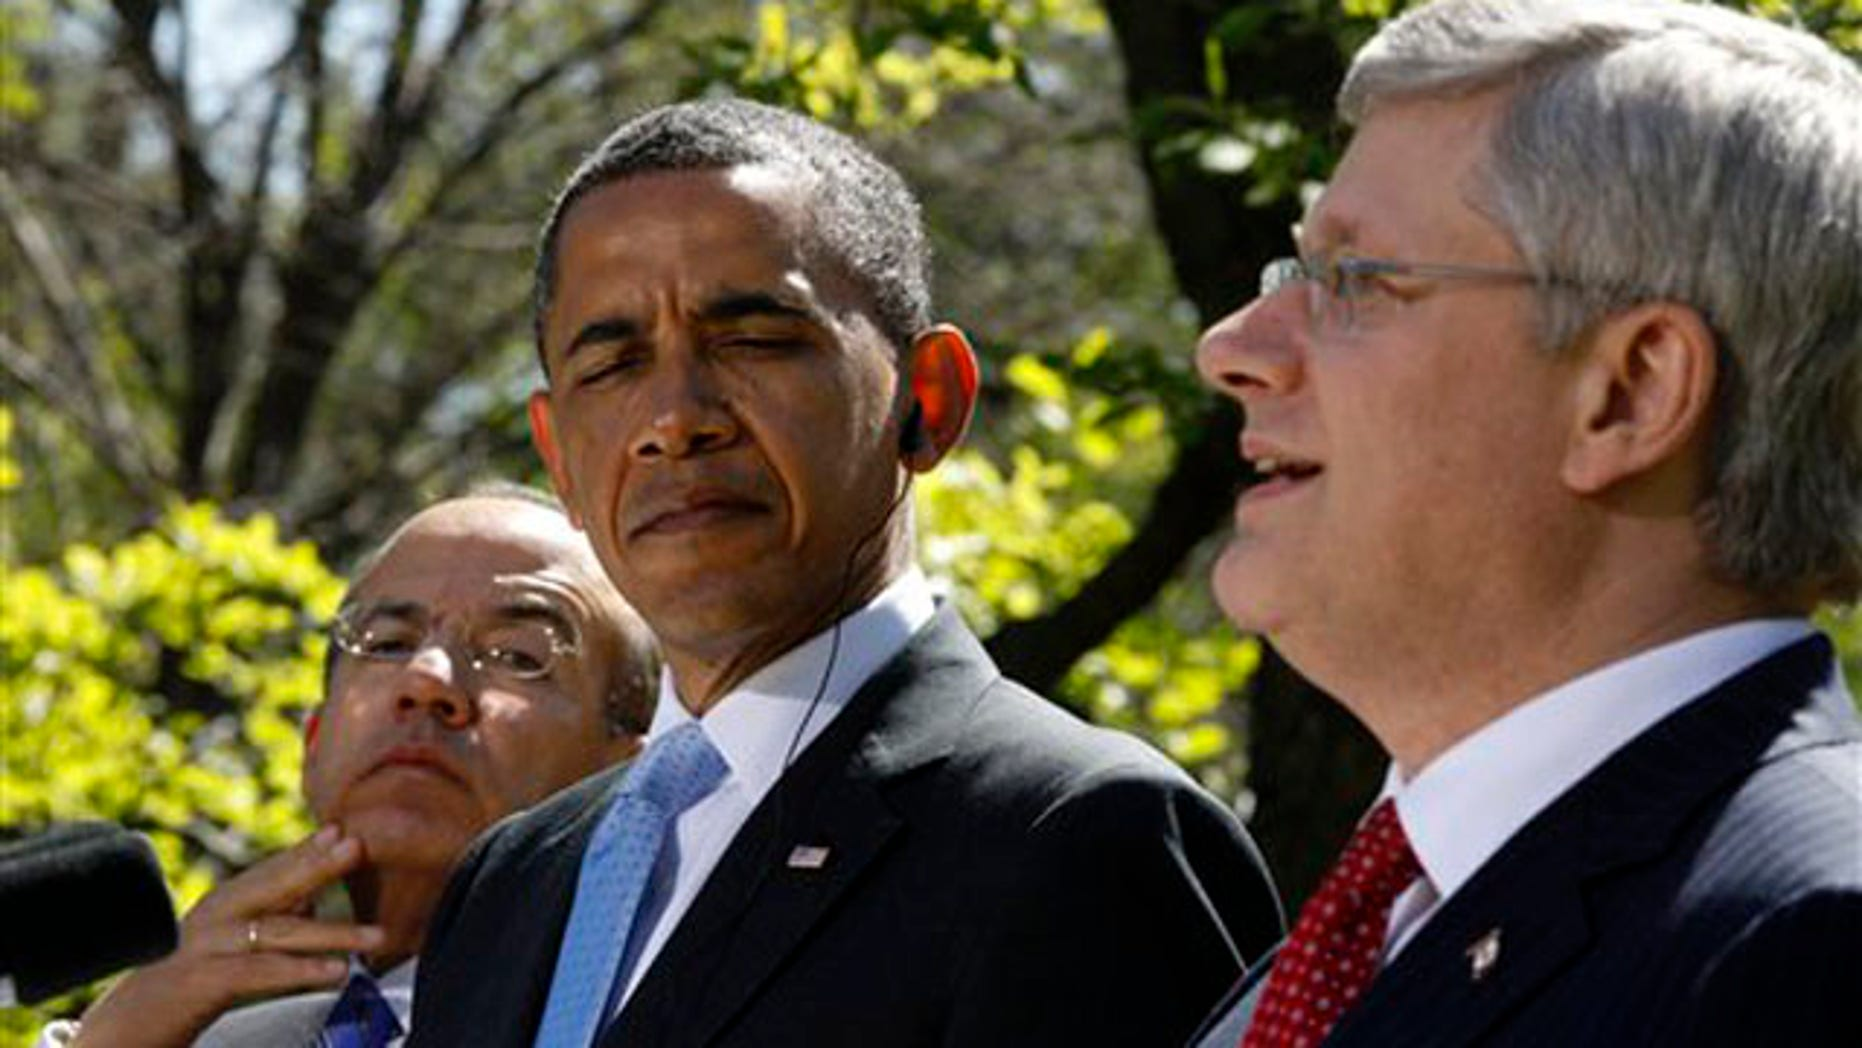 April 2, 2012: President Obama, Mexico's President Felipe Calderon, left, and Canada's Prime Minister Stephen Harper take part in a joint news conference in the Rose Garden.